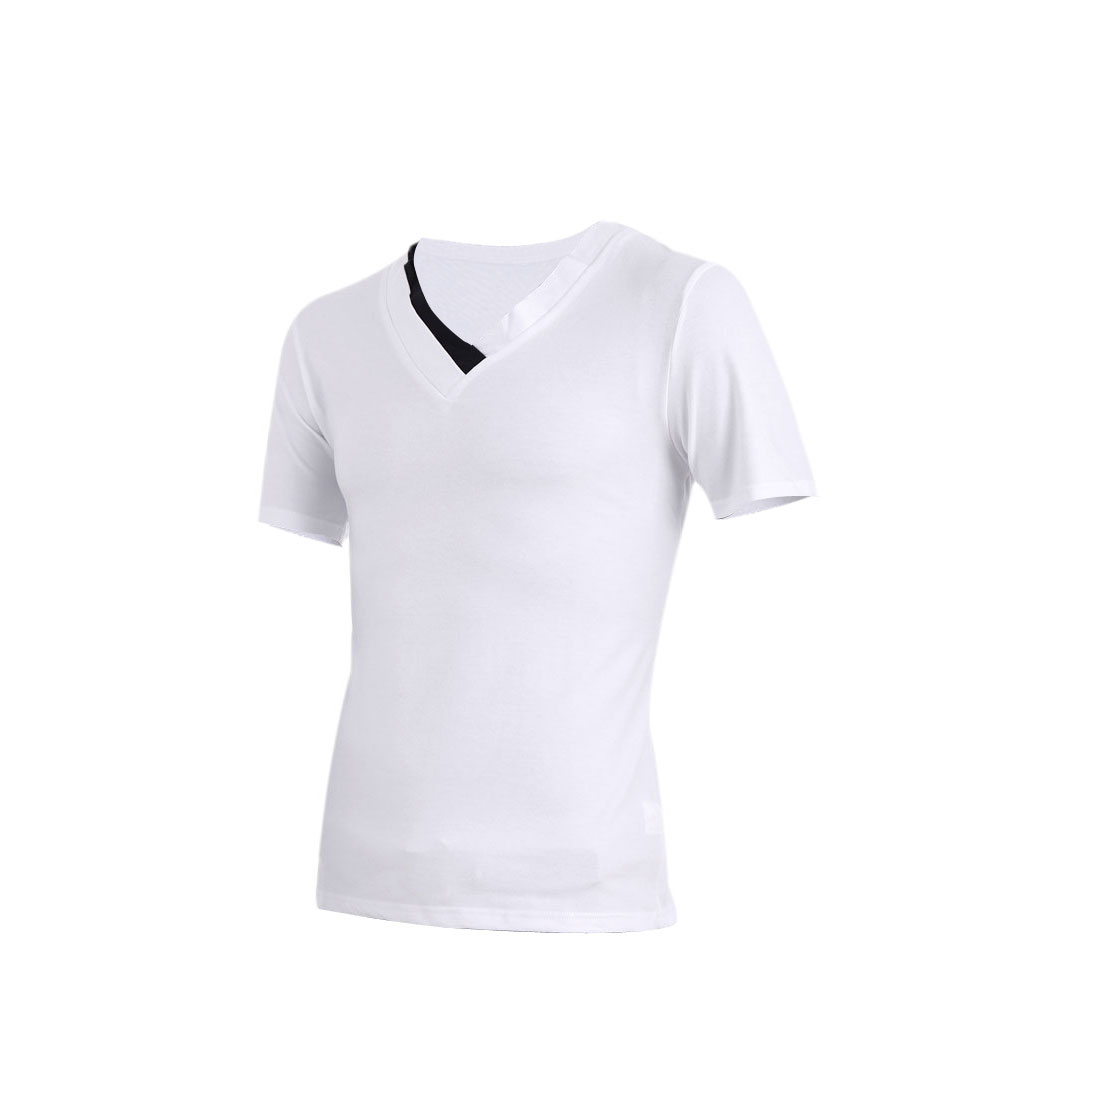 Men V Neck Short Sleeve Summer Wearing Leisure Shirt White M